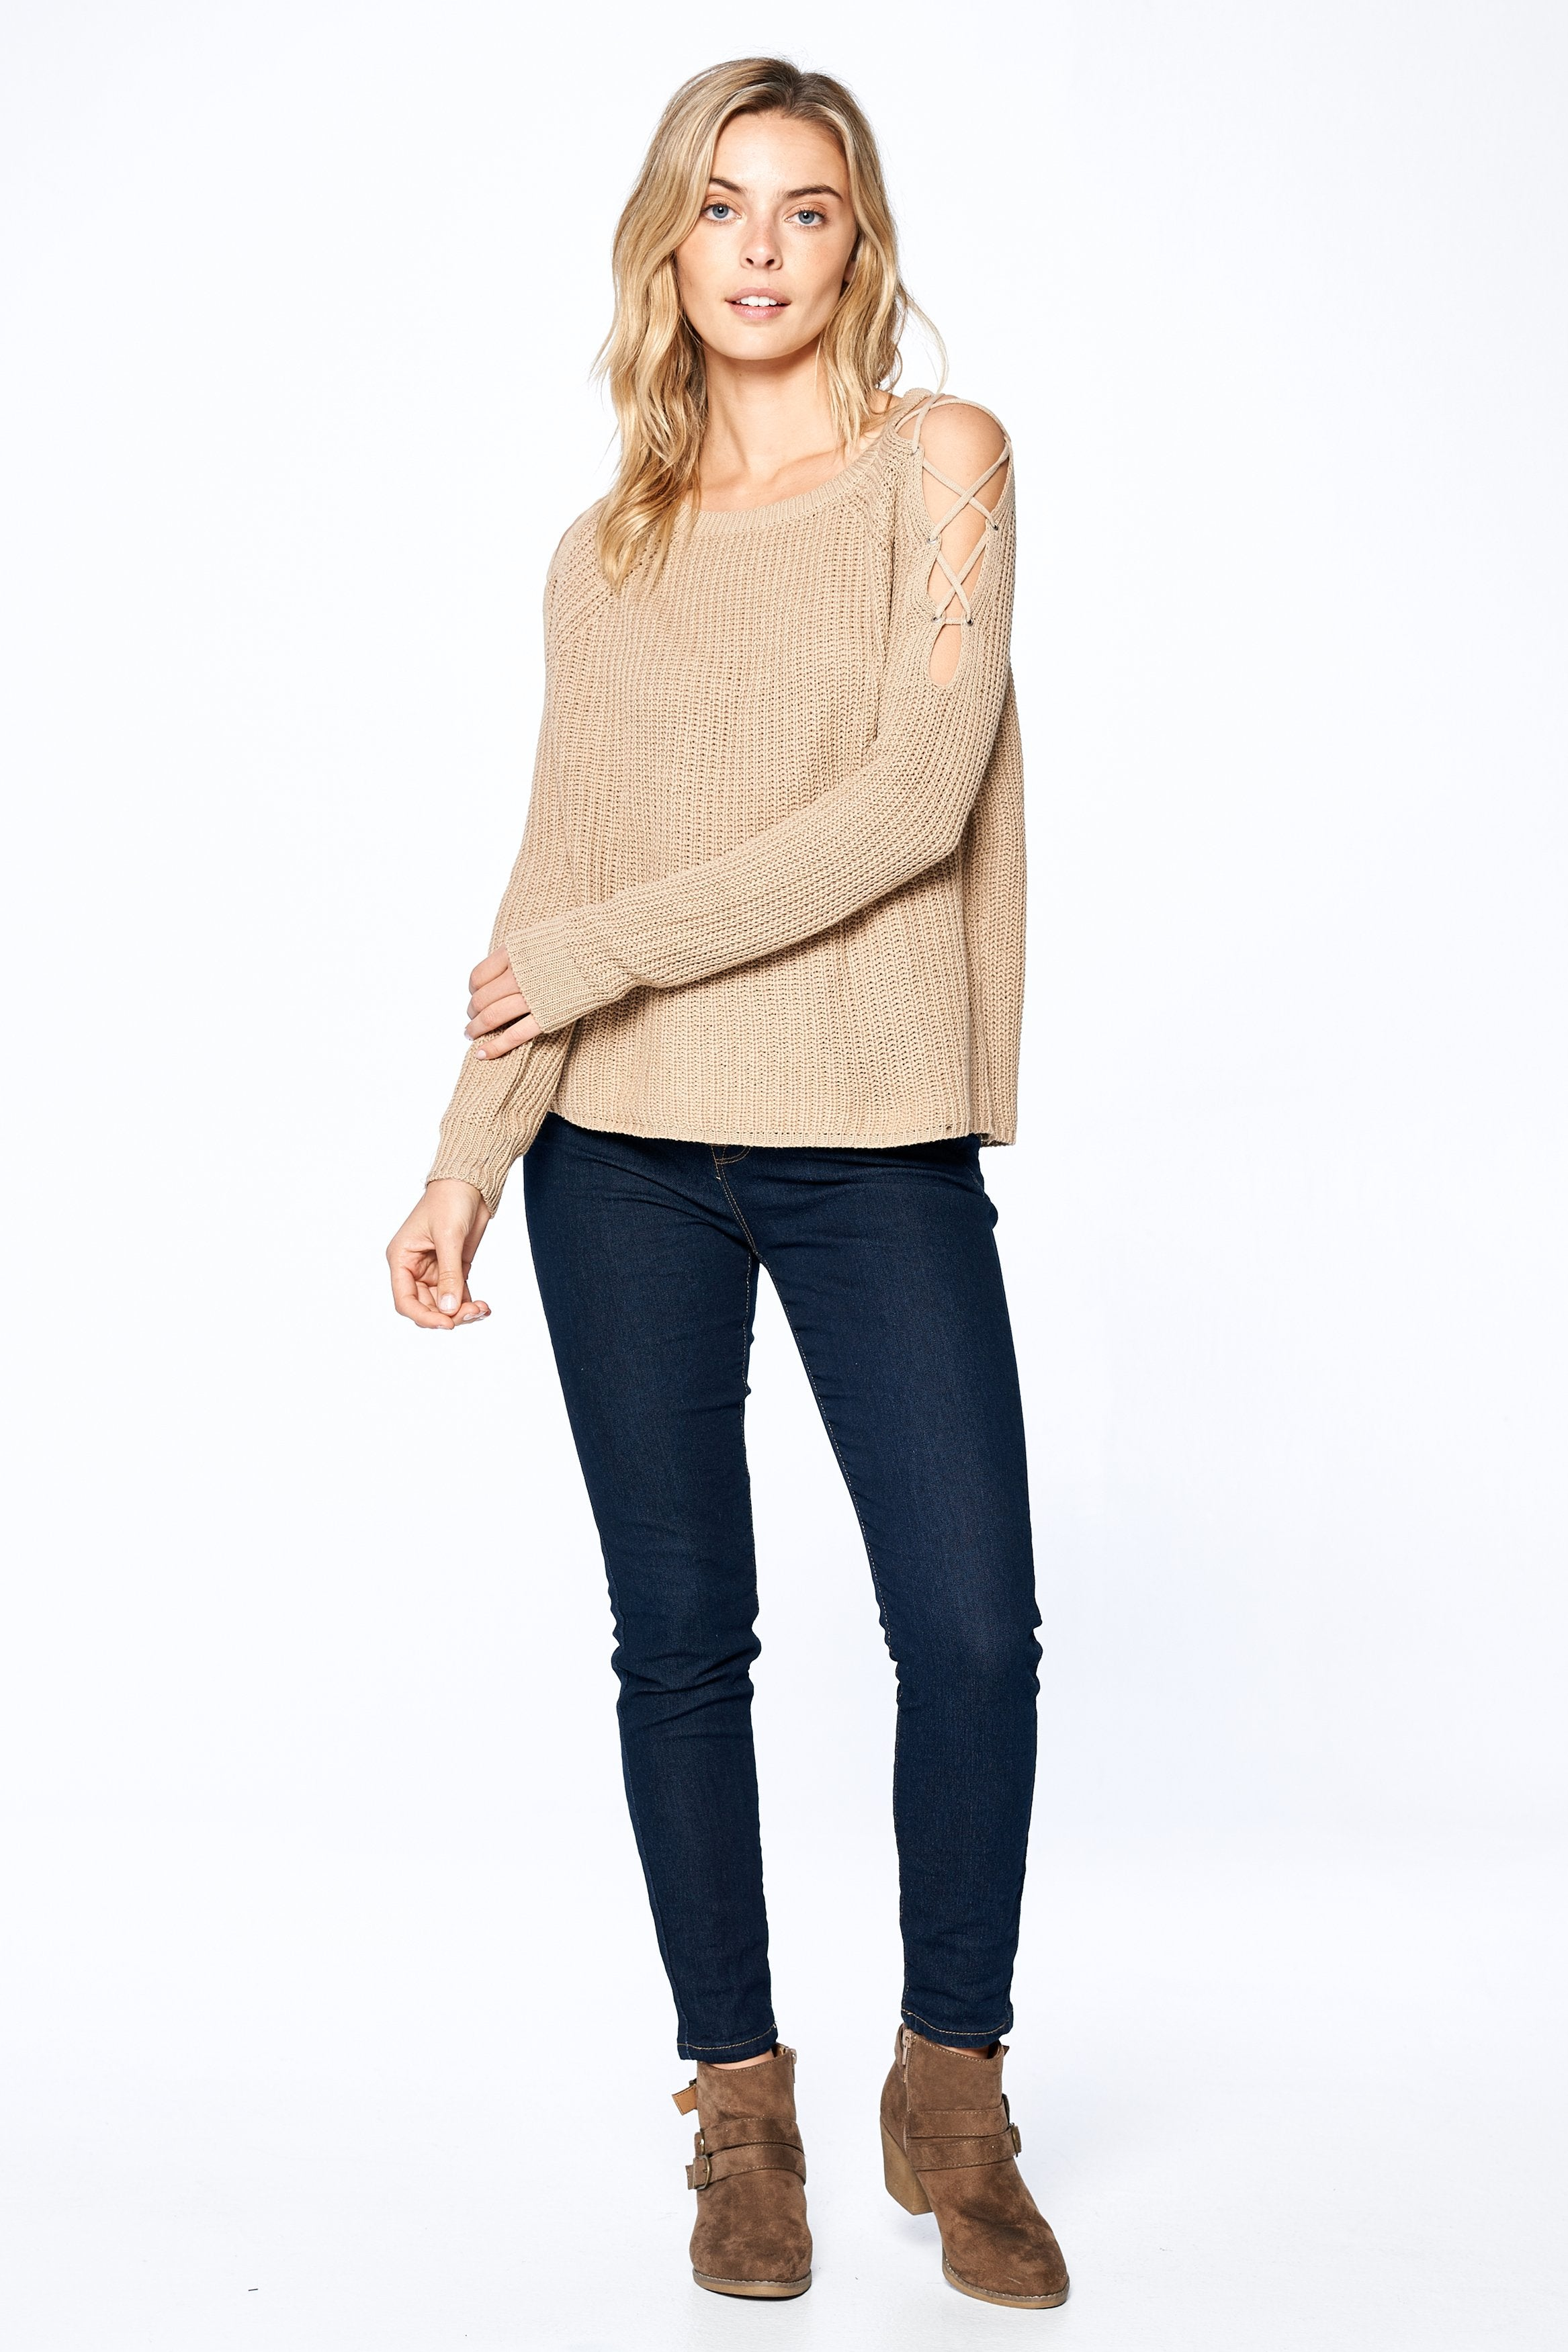 Khanomak Women's Long Sleeve Knit Open Shoulder Lace Up Sweater Top